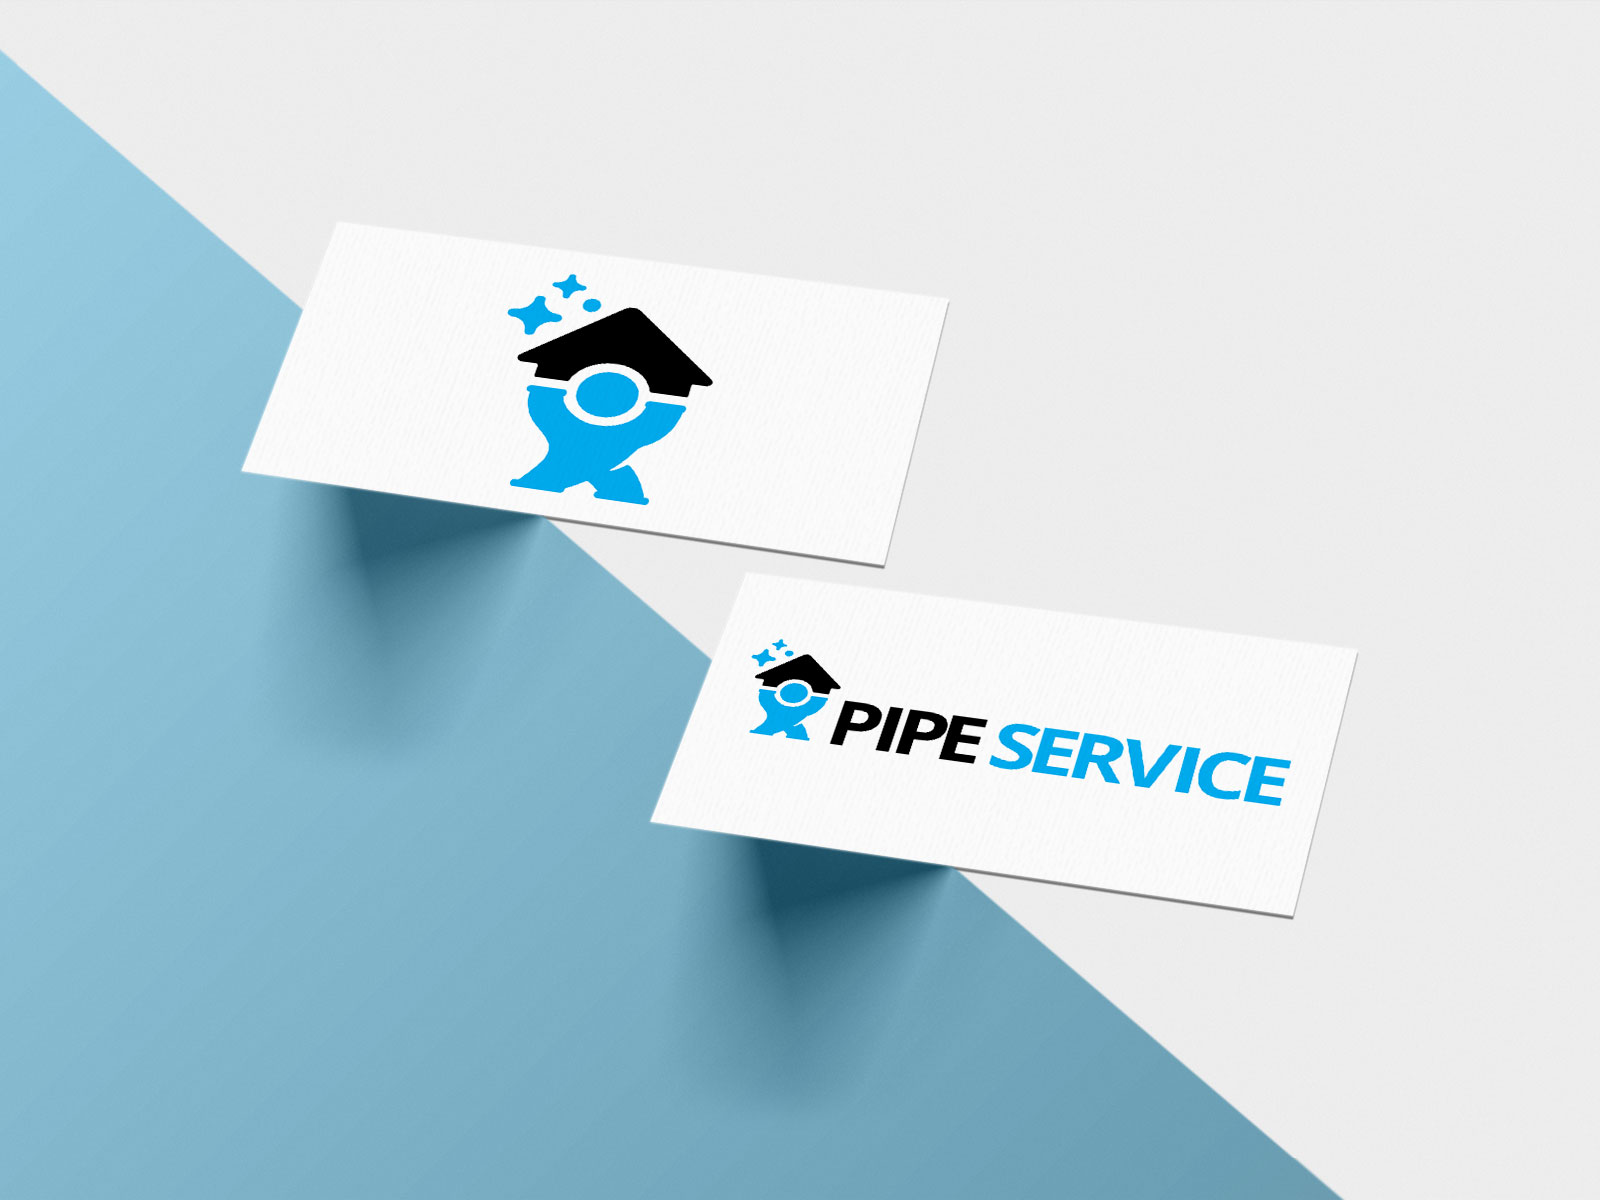 pipeservice logotype